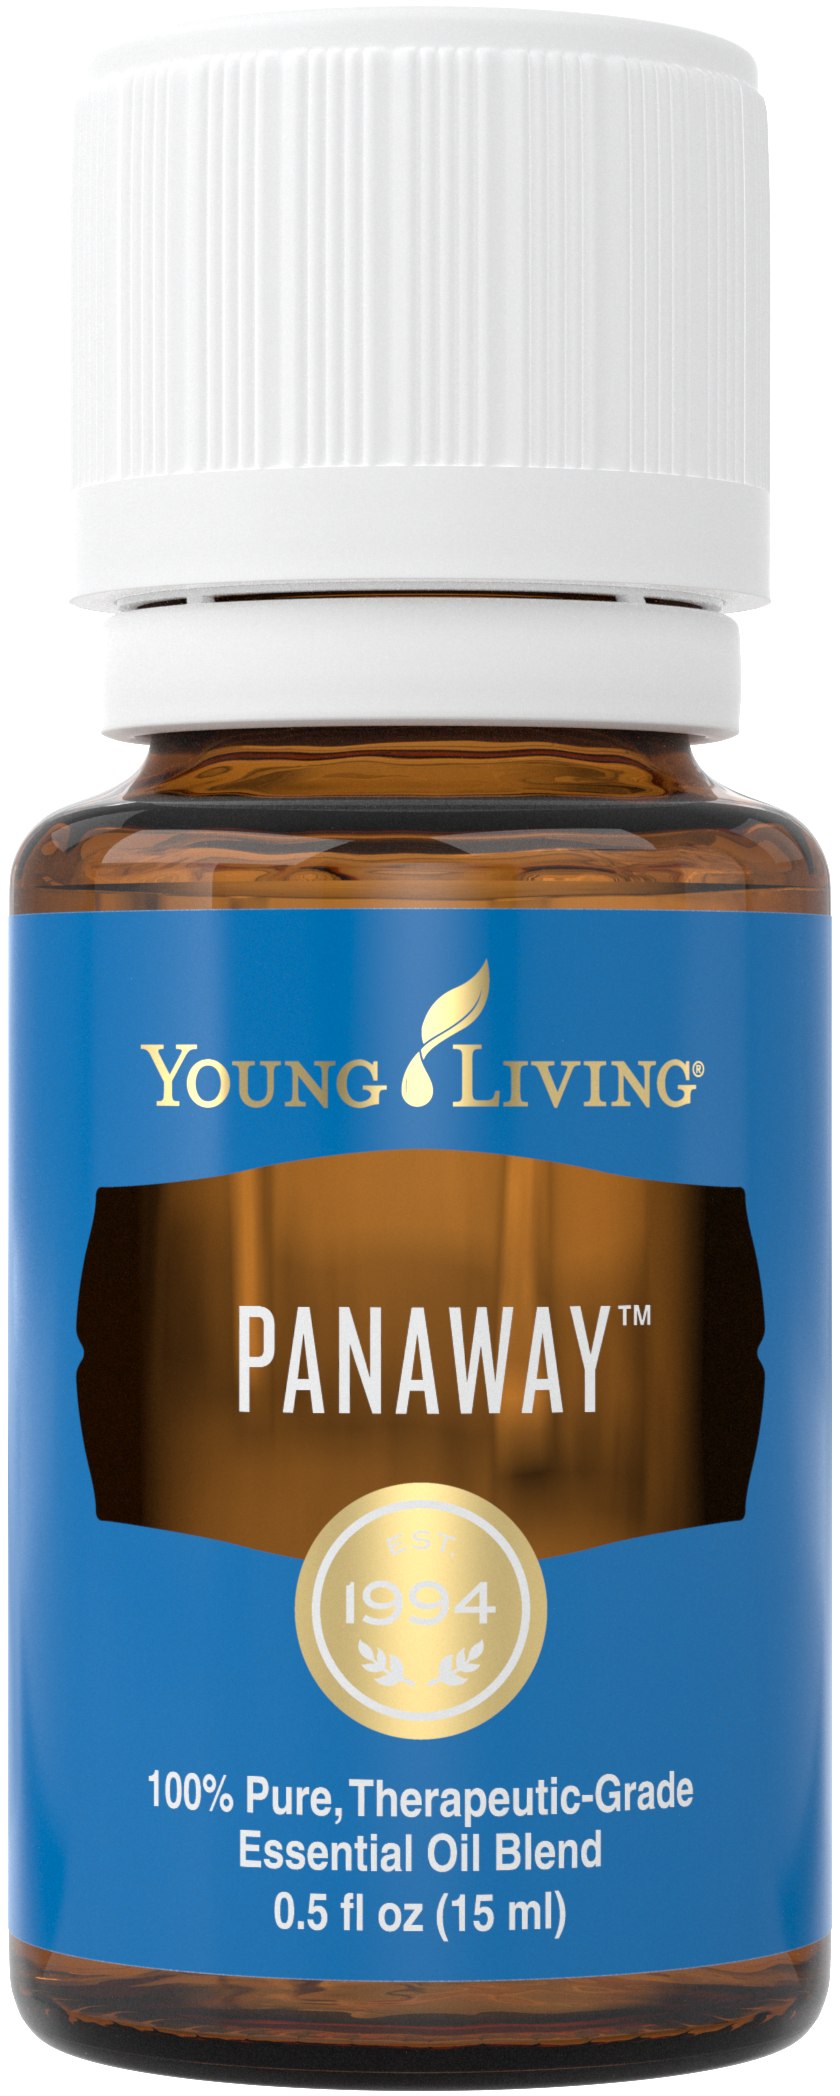 PanAway essential oil benefits and uses